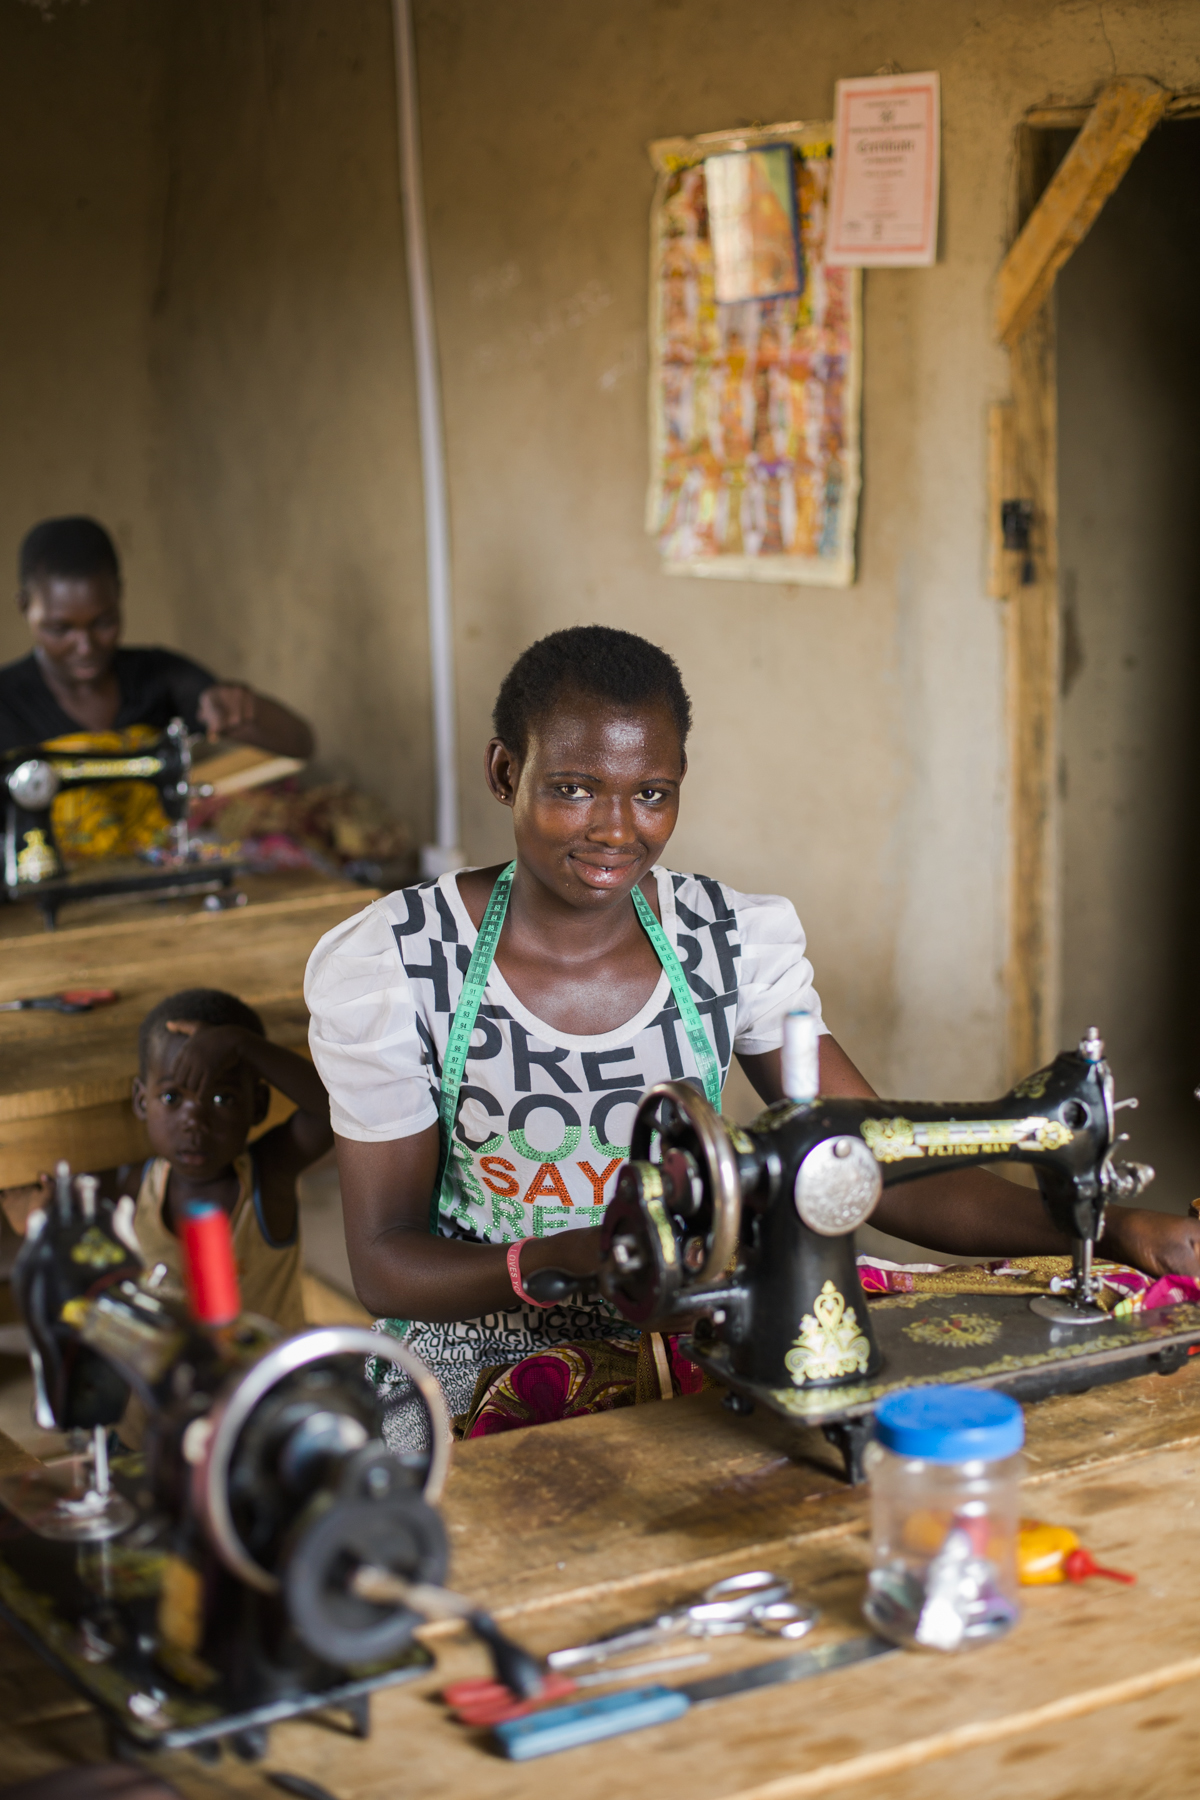 The vocational centre is a space where young women can go to learn skills such as sewing, which will allow them to make their own clothing, including children's school uniforms. The cost of fabric is far less than buying brand new clothing. The vocational centre is always accepting donations for hand powered sewing machines, fabric and other sewing supplies.